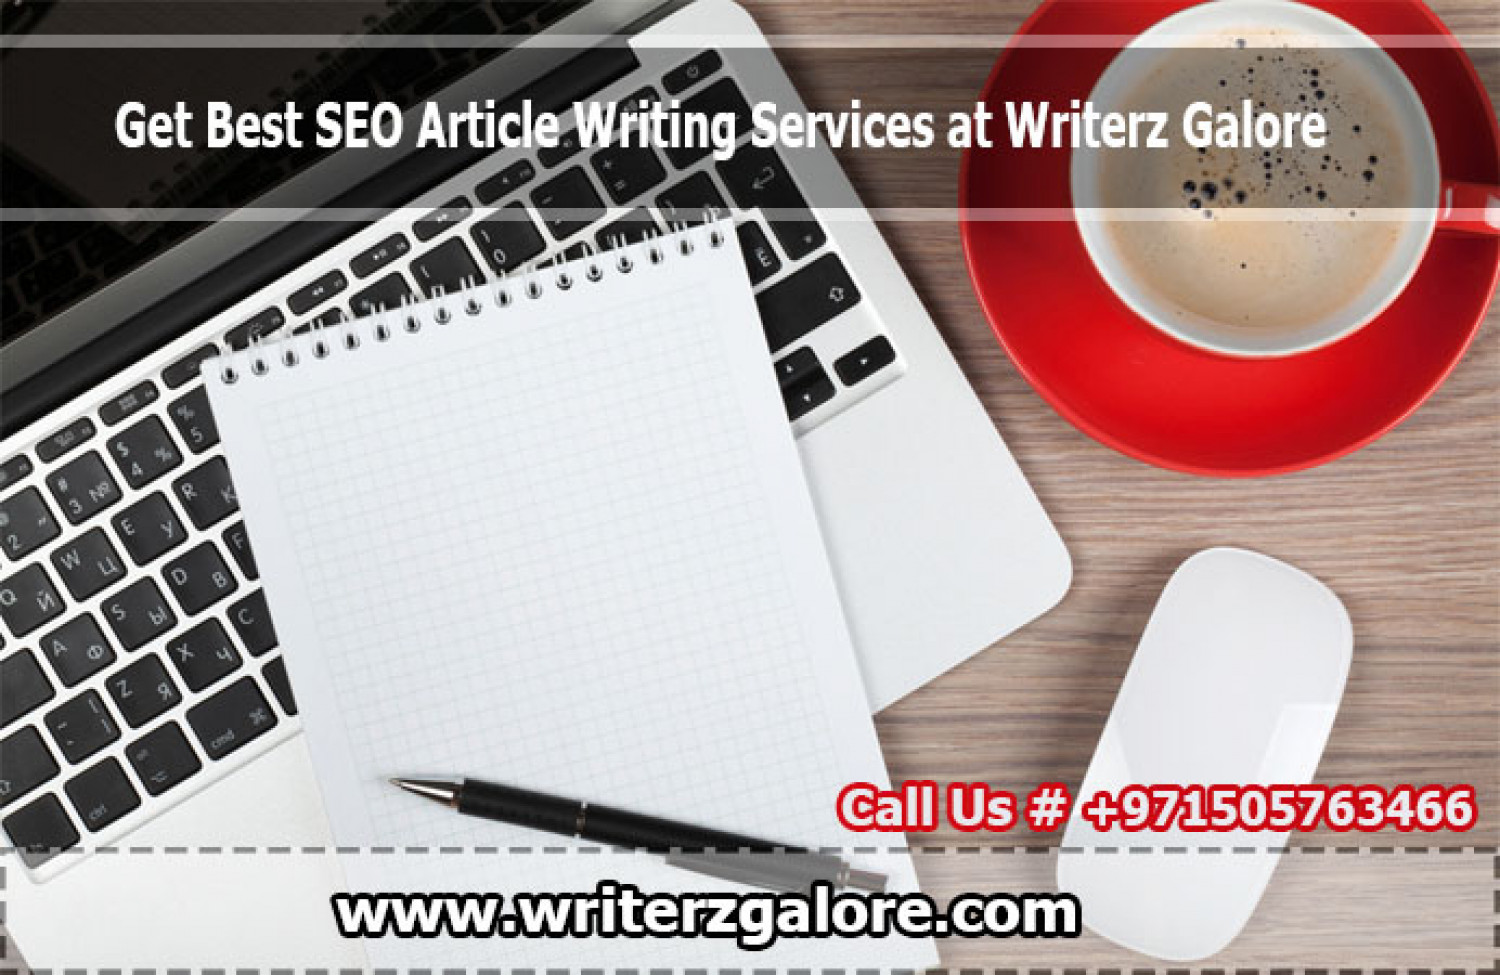 Get Best Seo Article Writing Services At Writerz Galore  Visually Get Best Seo Article Writing Services At Writerz Galore Infographic